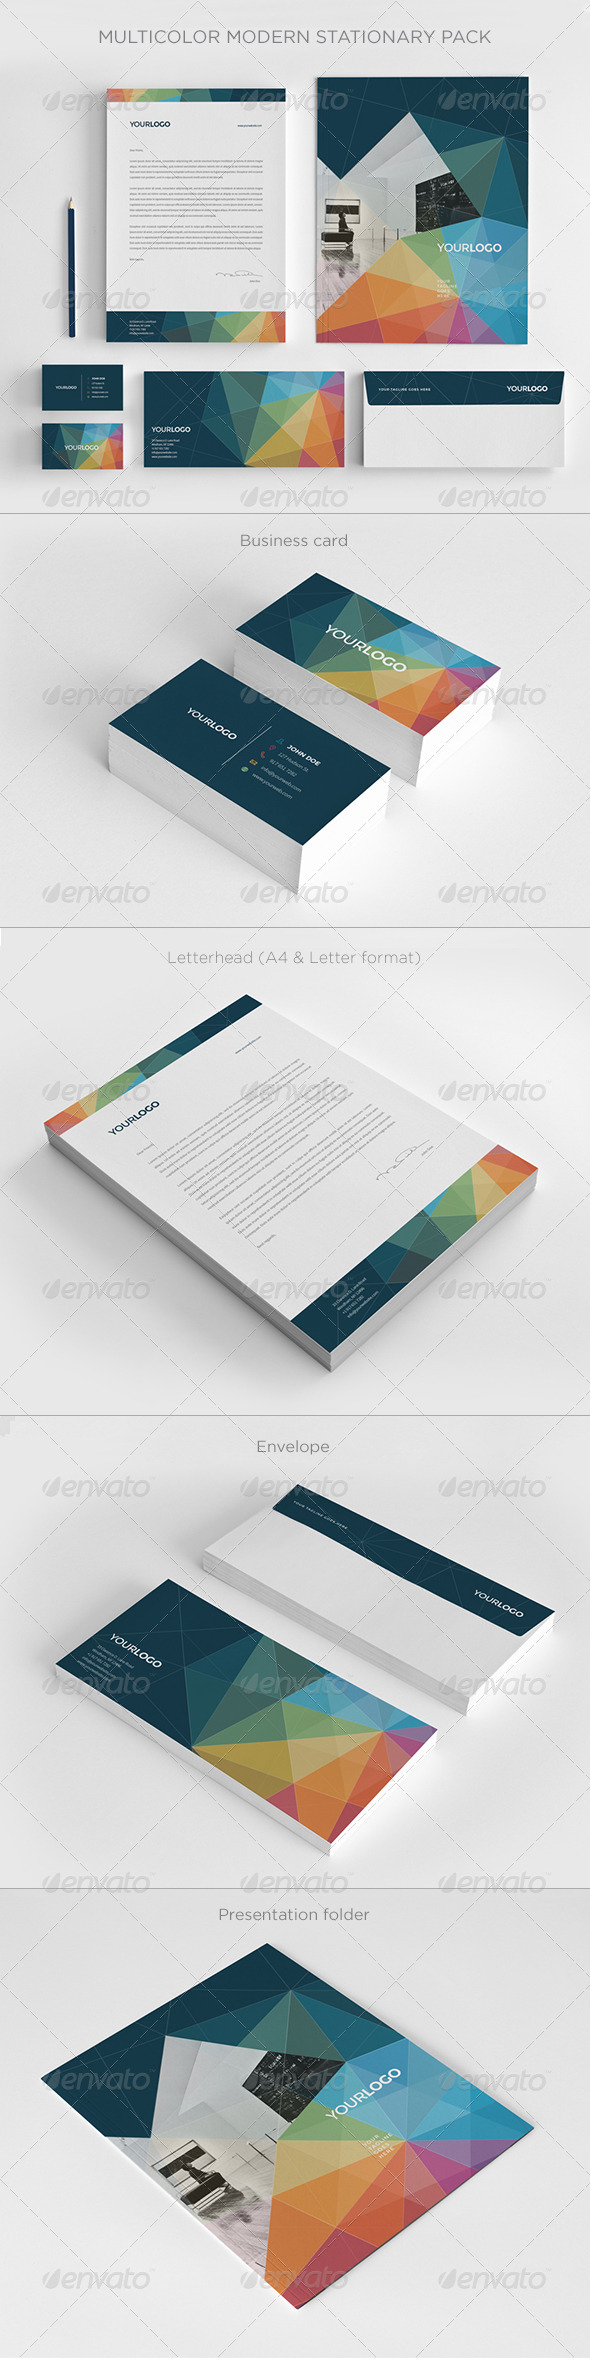 GraphicRiver Multicolor Modern Stationery Pack 7281036